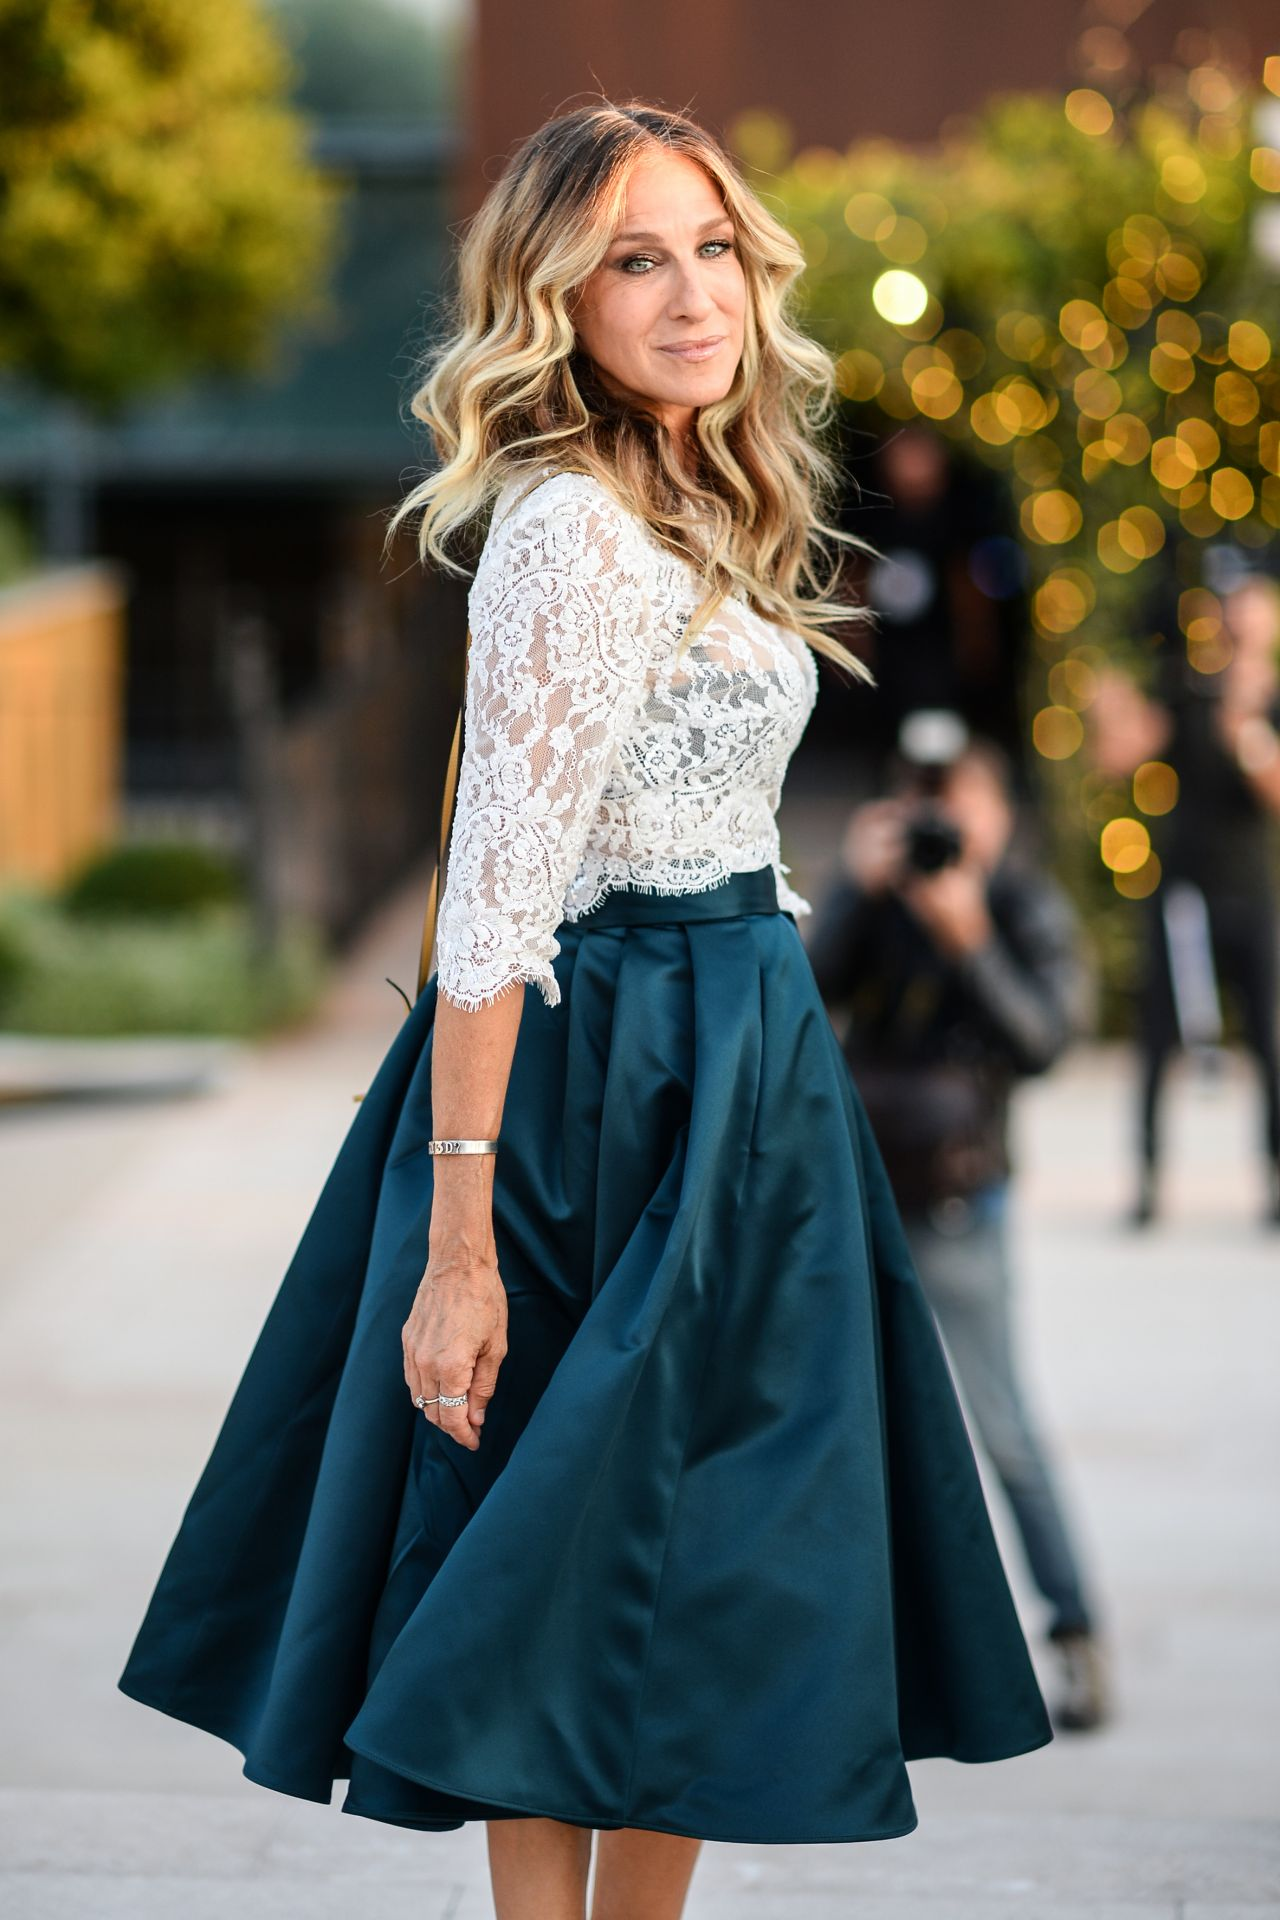 Sarah Jessica Parker Style - Fashion Pictures of Sarah